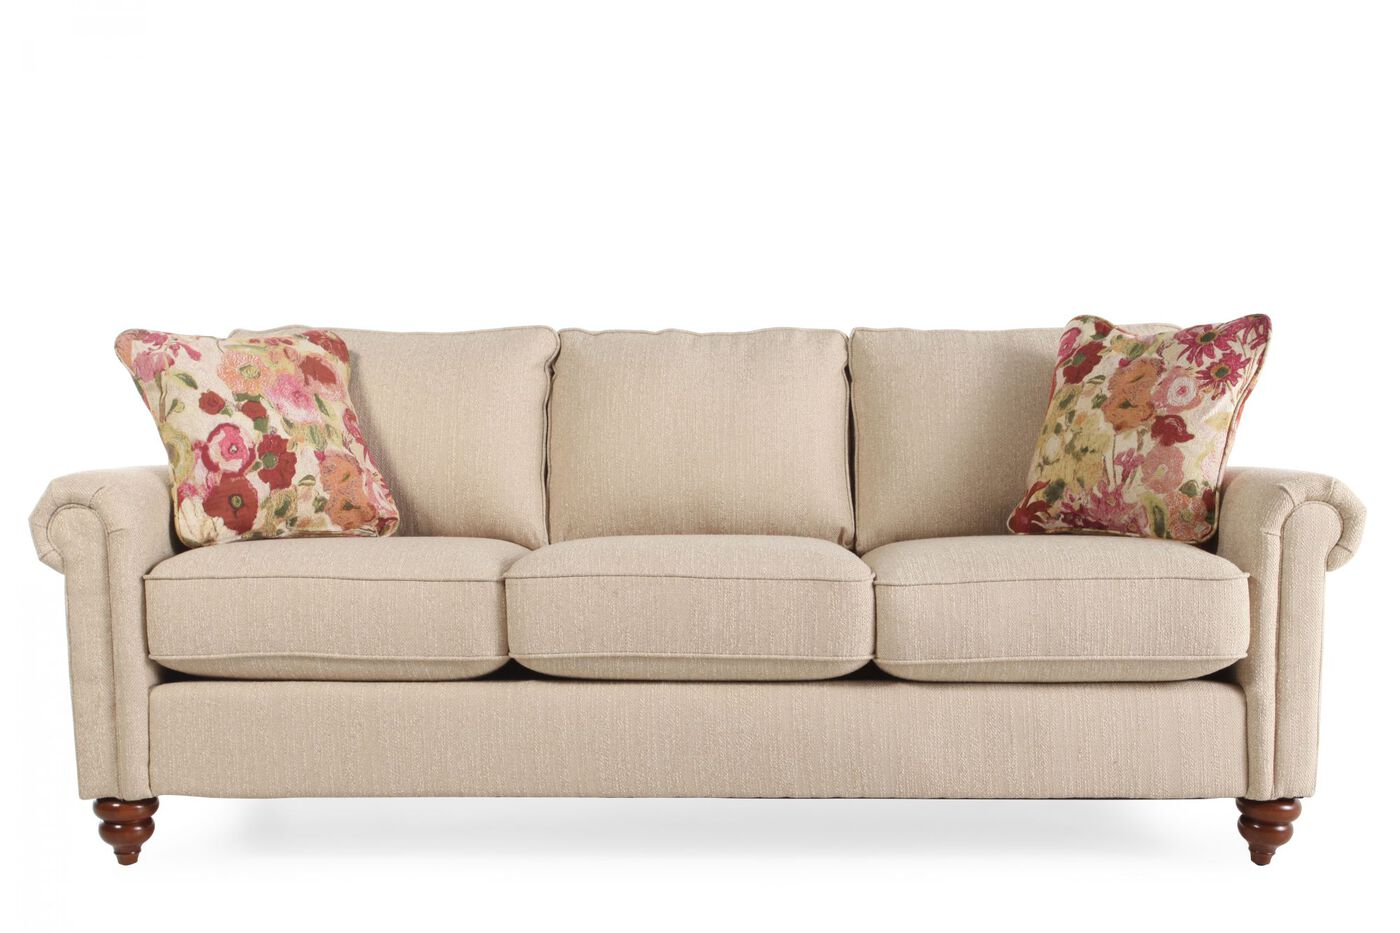 Contemporary 85 5 Rolled Arm Sofa In Sandstone